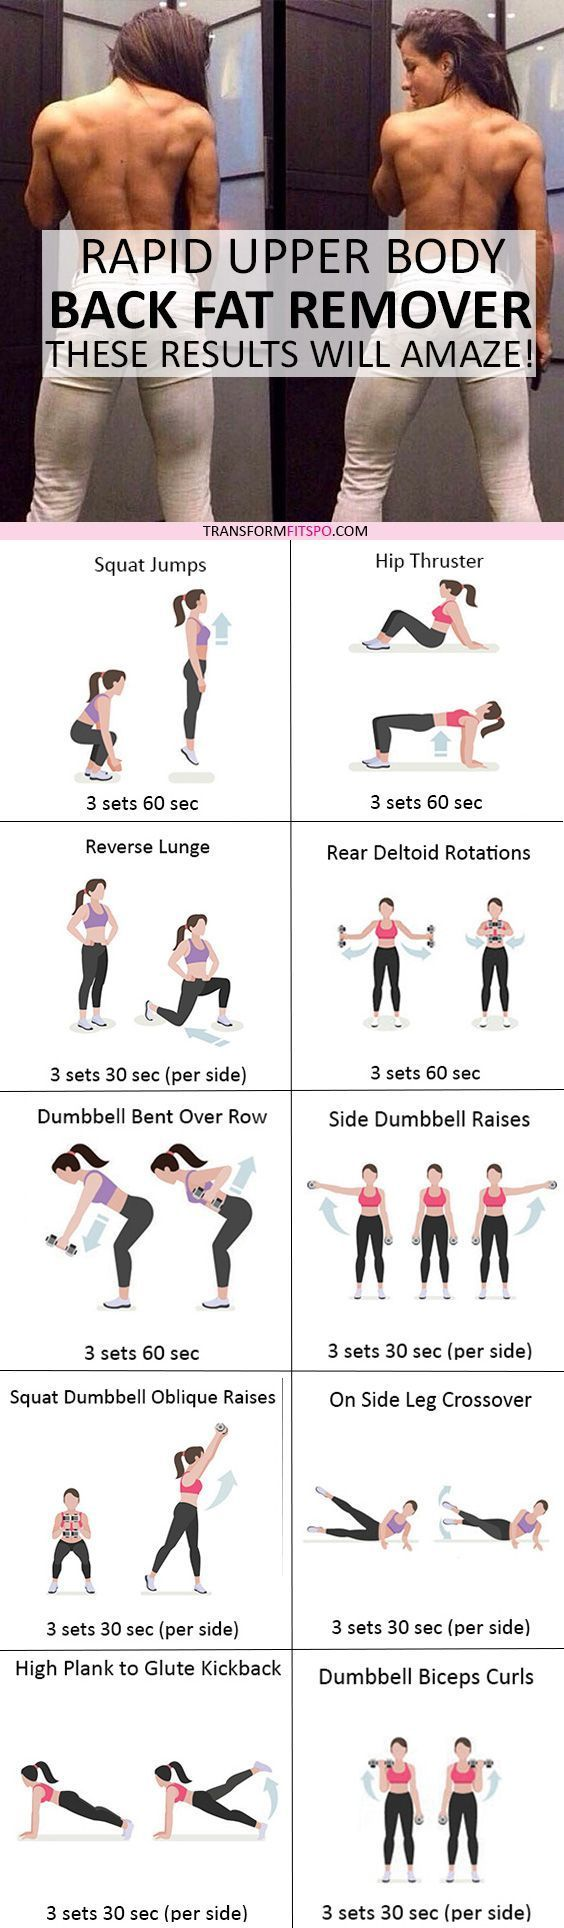 ?? How to Tone My Upper Body Quickly! Rapid Results Back Fat Removal. These Results are Amazing…